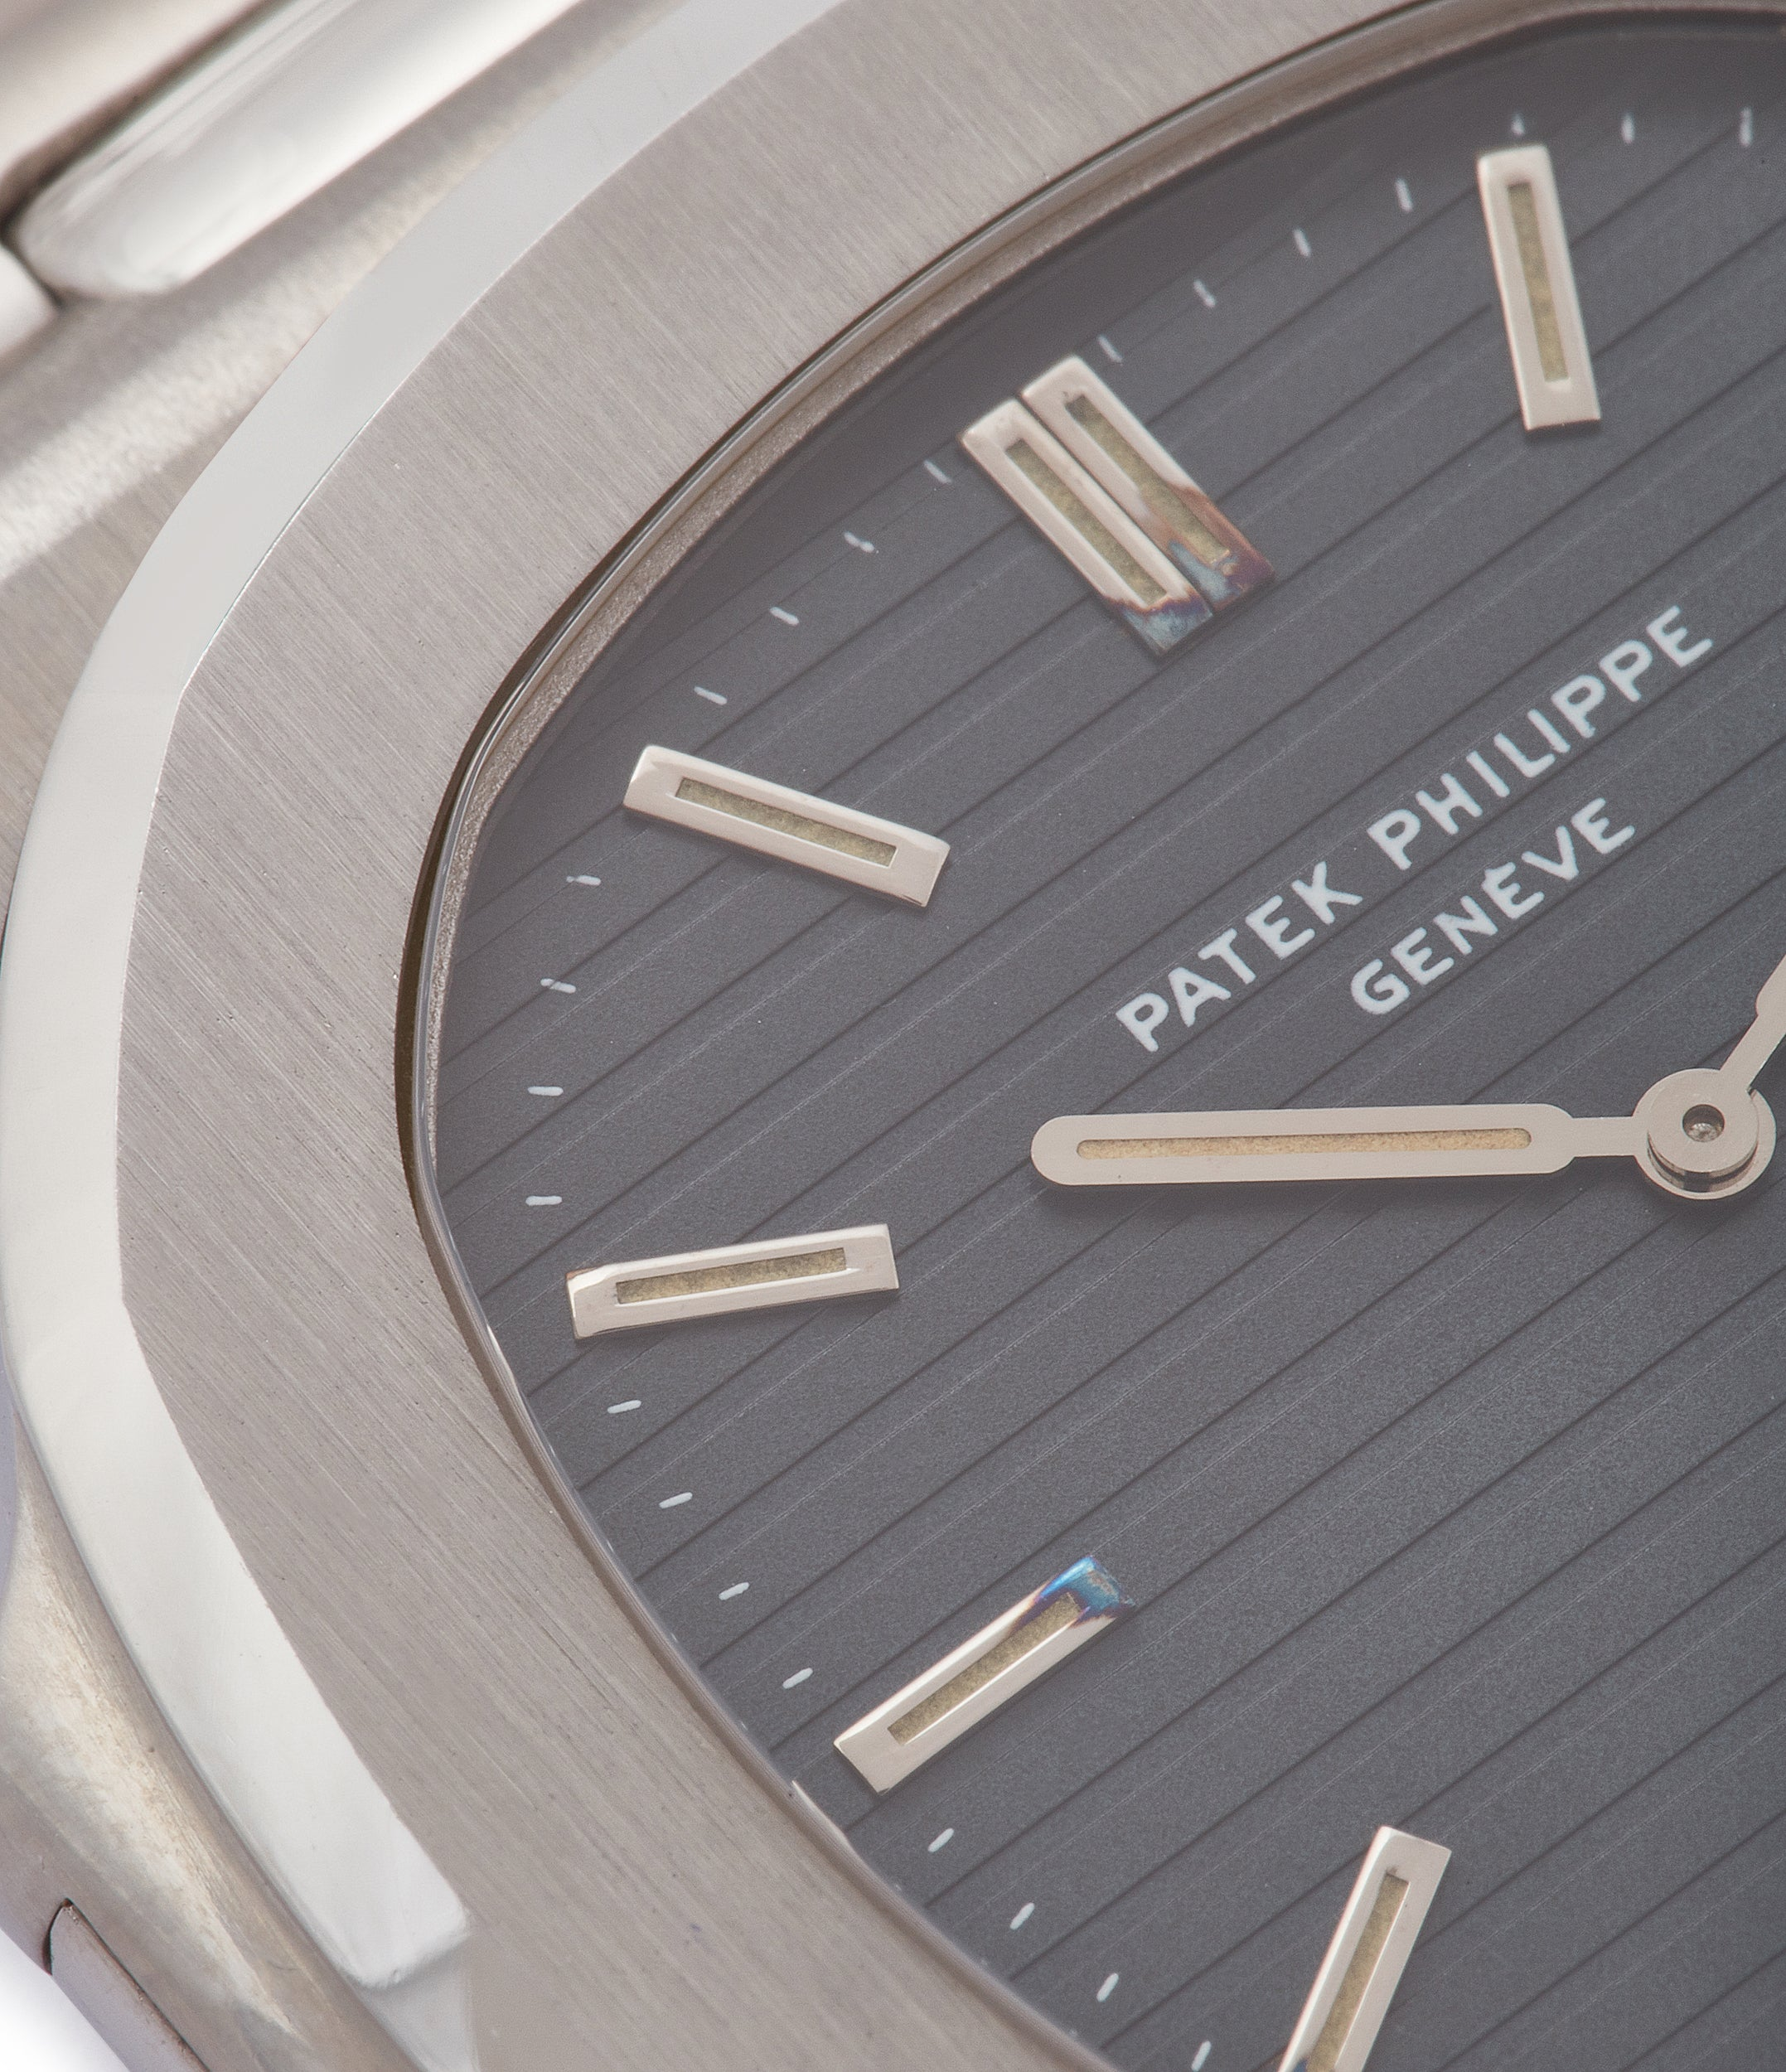 Patek Philippe Nautilus dial by Stern Freres 3700/001A full set sport watch for sale online at A Collected Man London UK specialist of rare watches